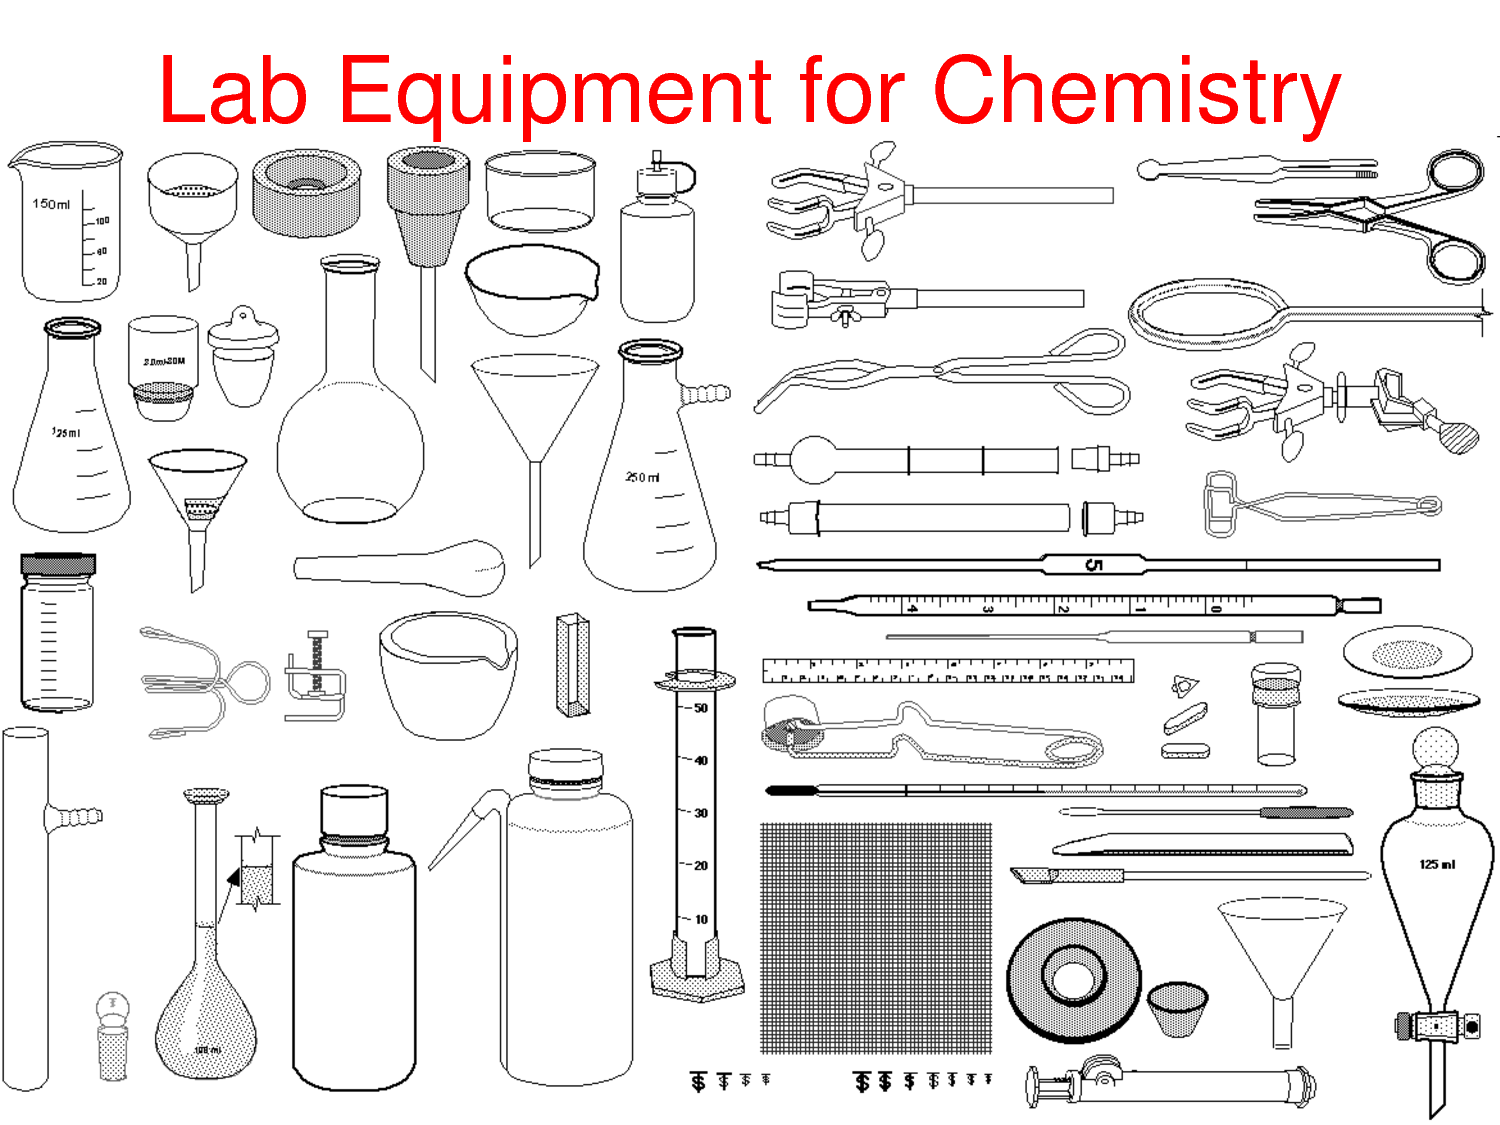 worksheets biology laboratory equipment names opossumsoft worksheets and printables. Black Bedroom Furniture Sets. Home Design Ideas